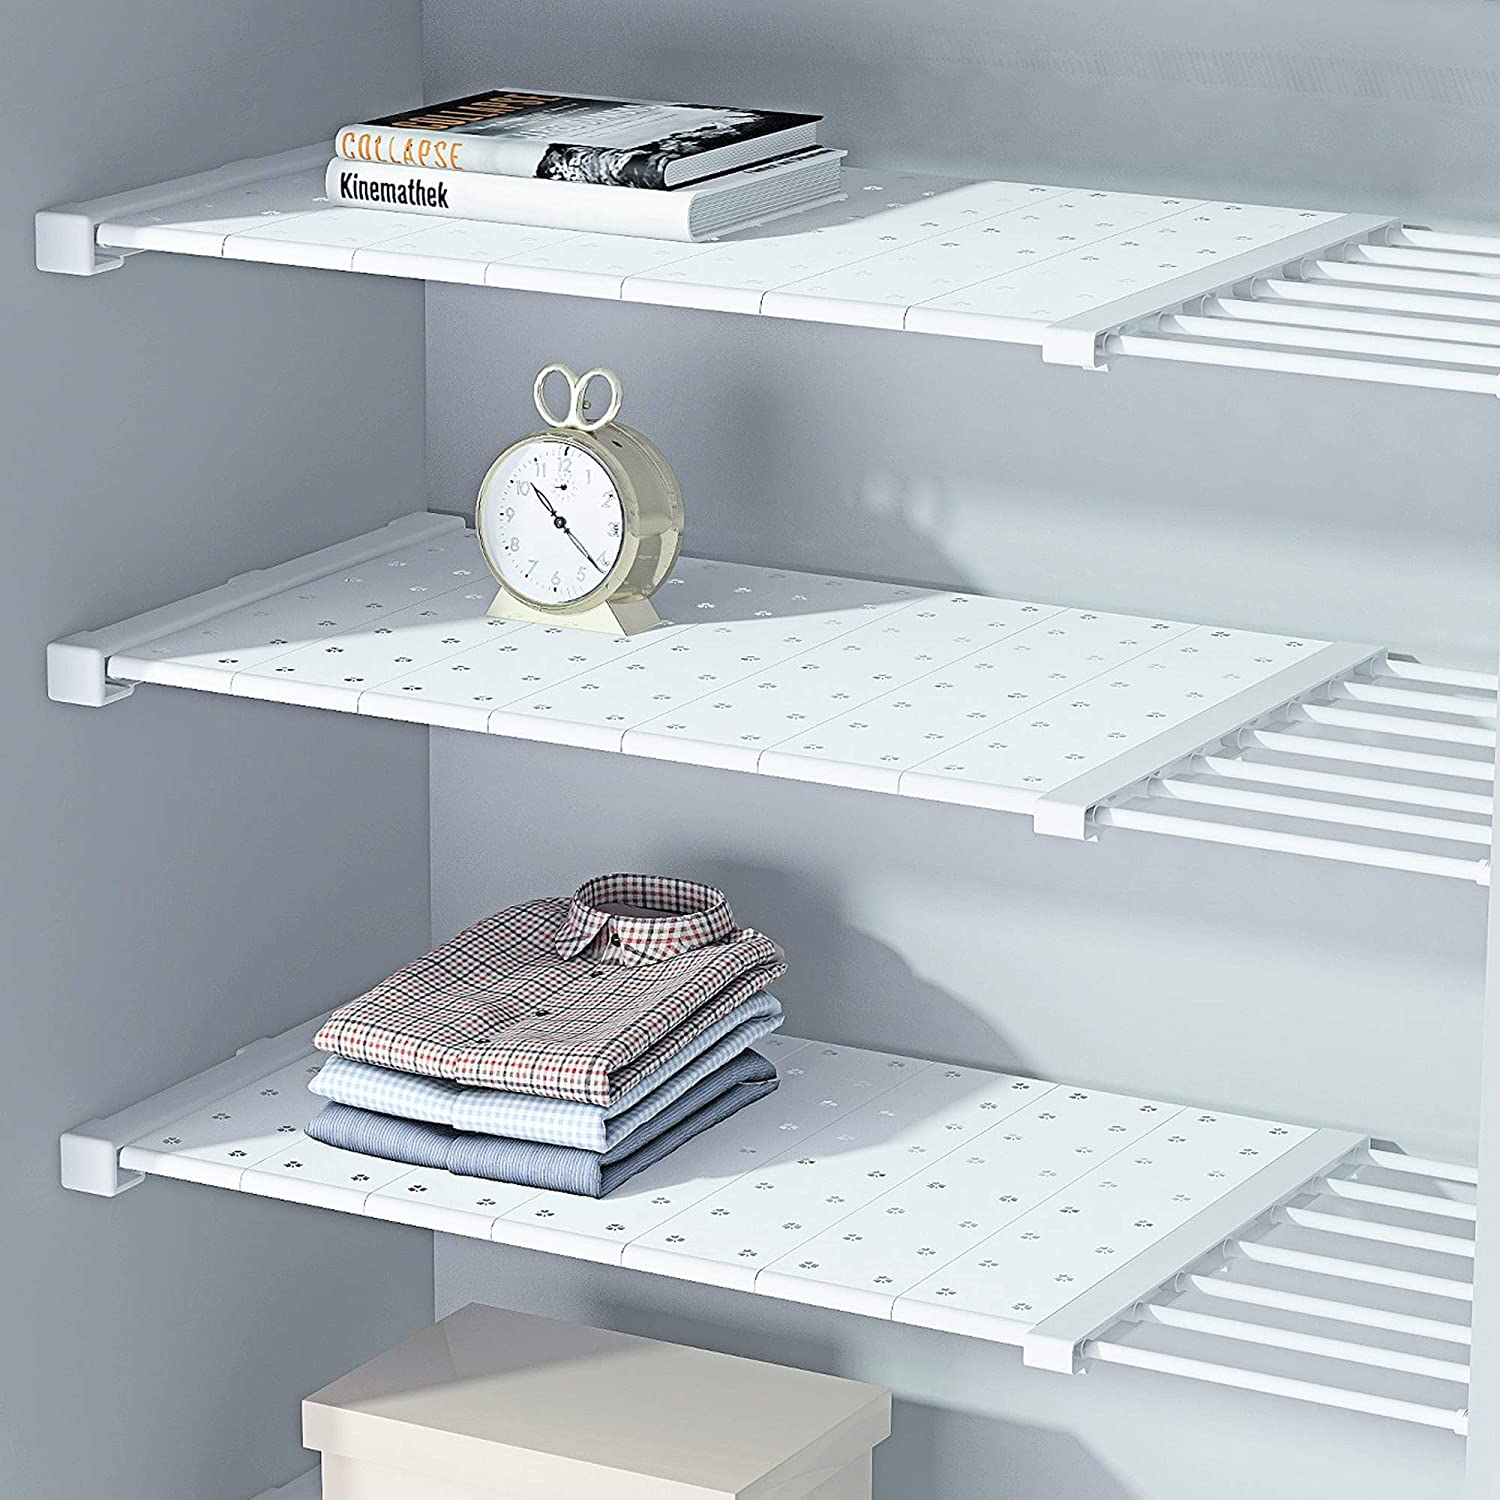 HDAIUCOV Tension New products world's highest quality popular 67% OFF of fixed price Shelf Expandable Adjustable for Shelves